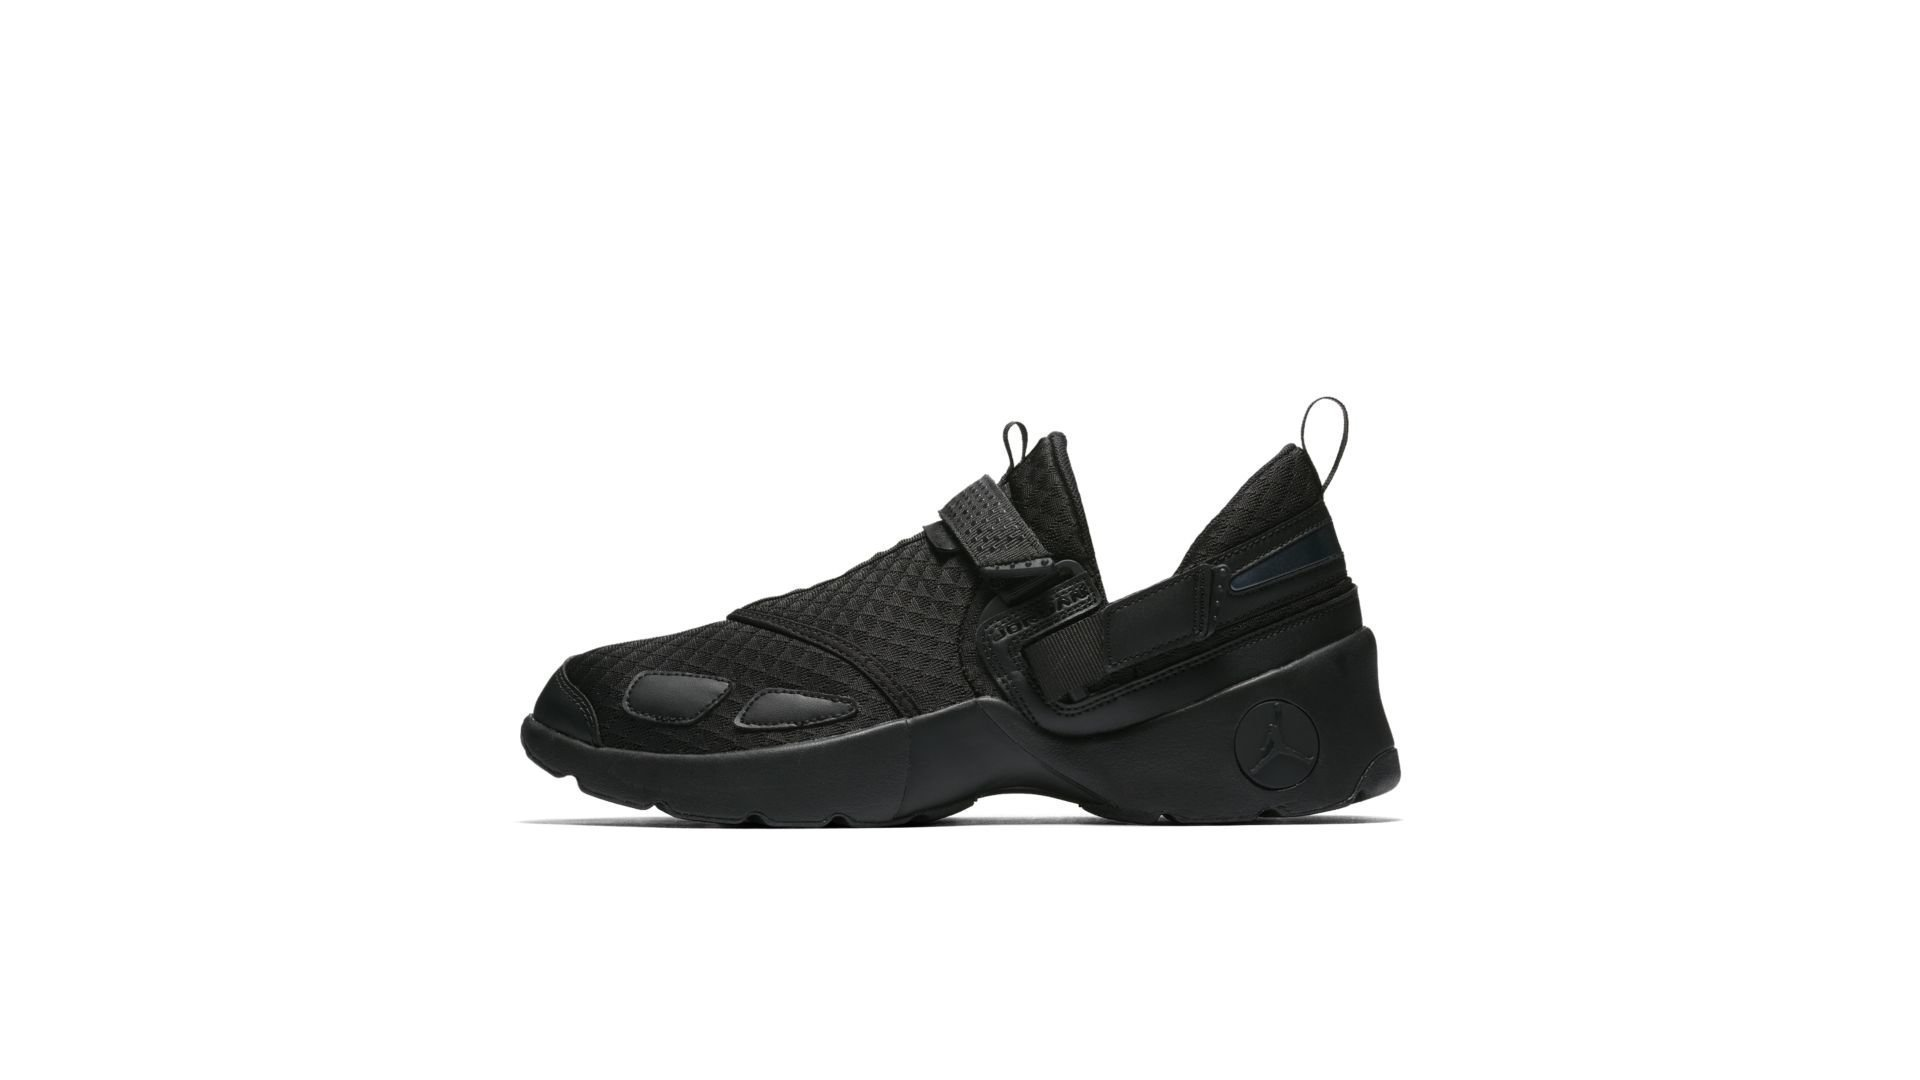 Jordan Trunner LX Triple Black (897992-020)